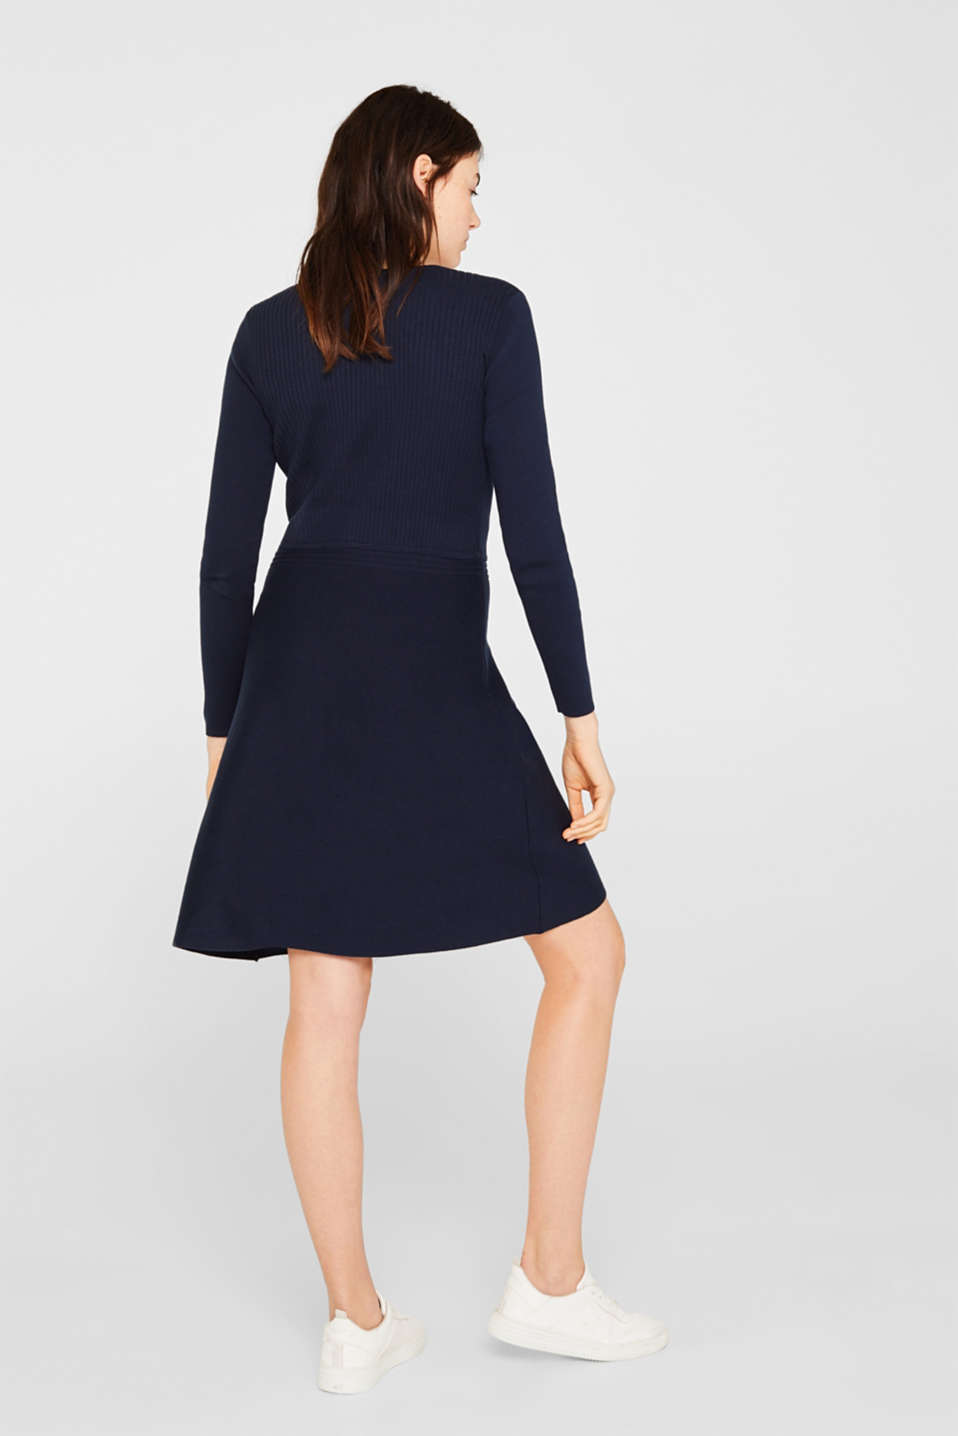 Dresses flat knitted, NAVY 2, detail image number 2